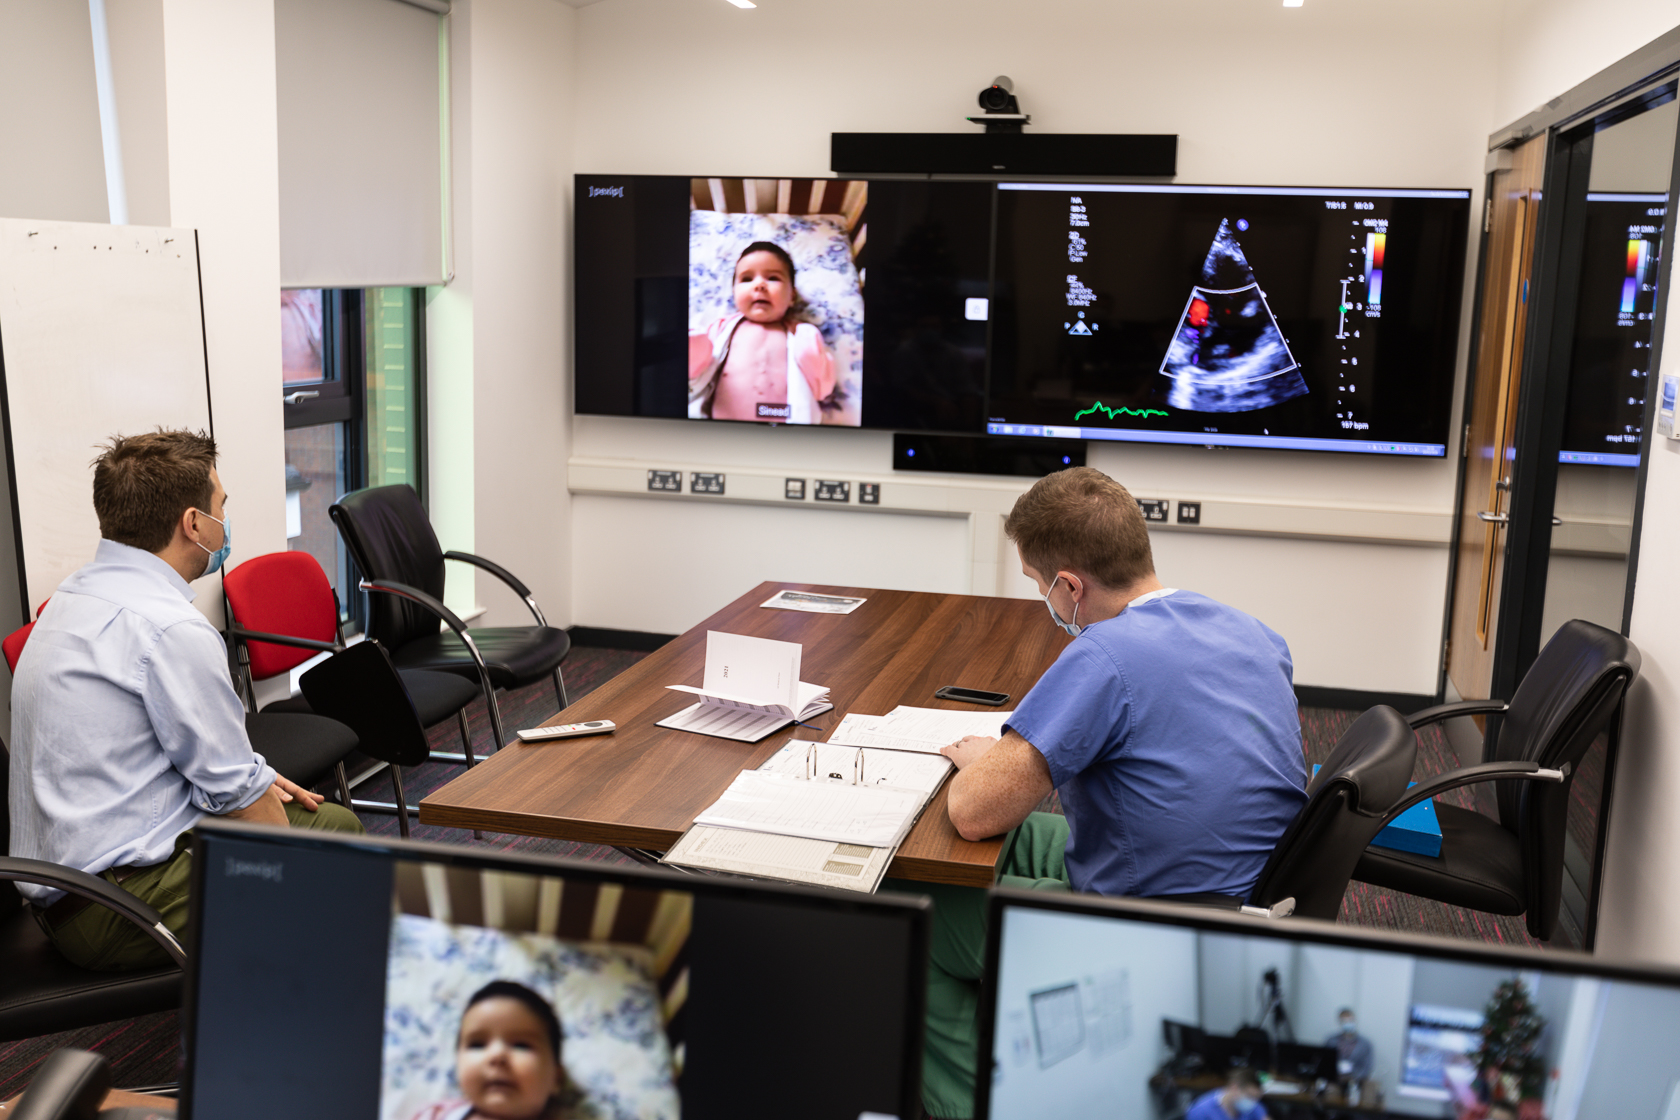 Medical staff perform remote telehealth video conference call via Pexip interoperability at Royal Belfast Hospital for Sick Children